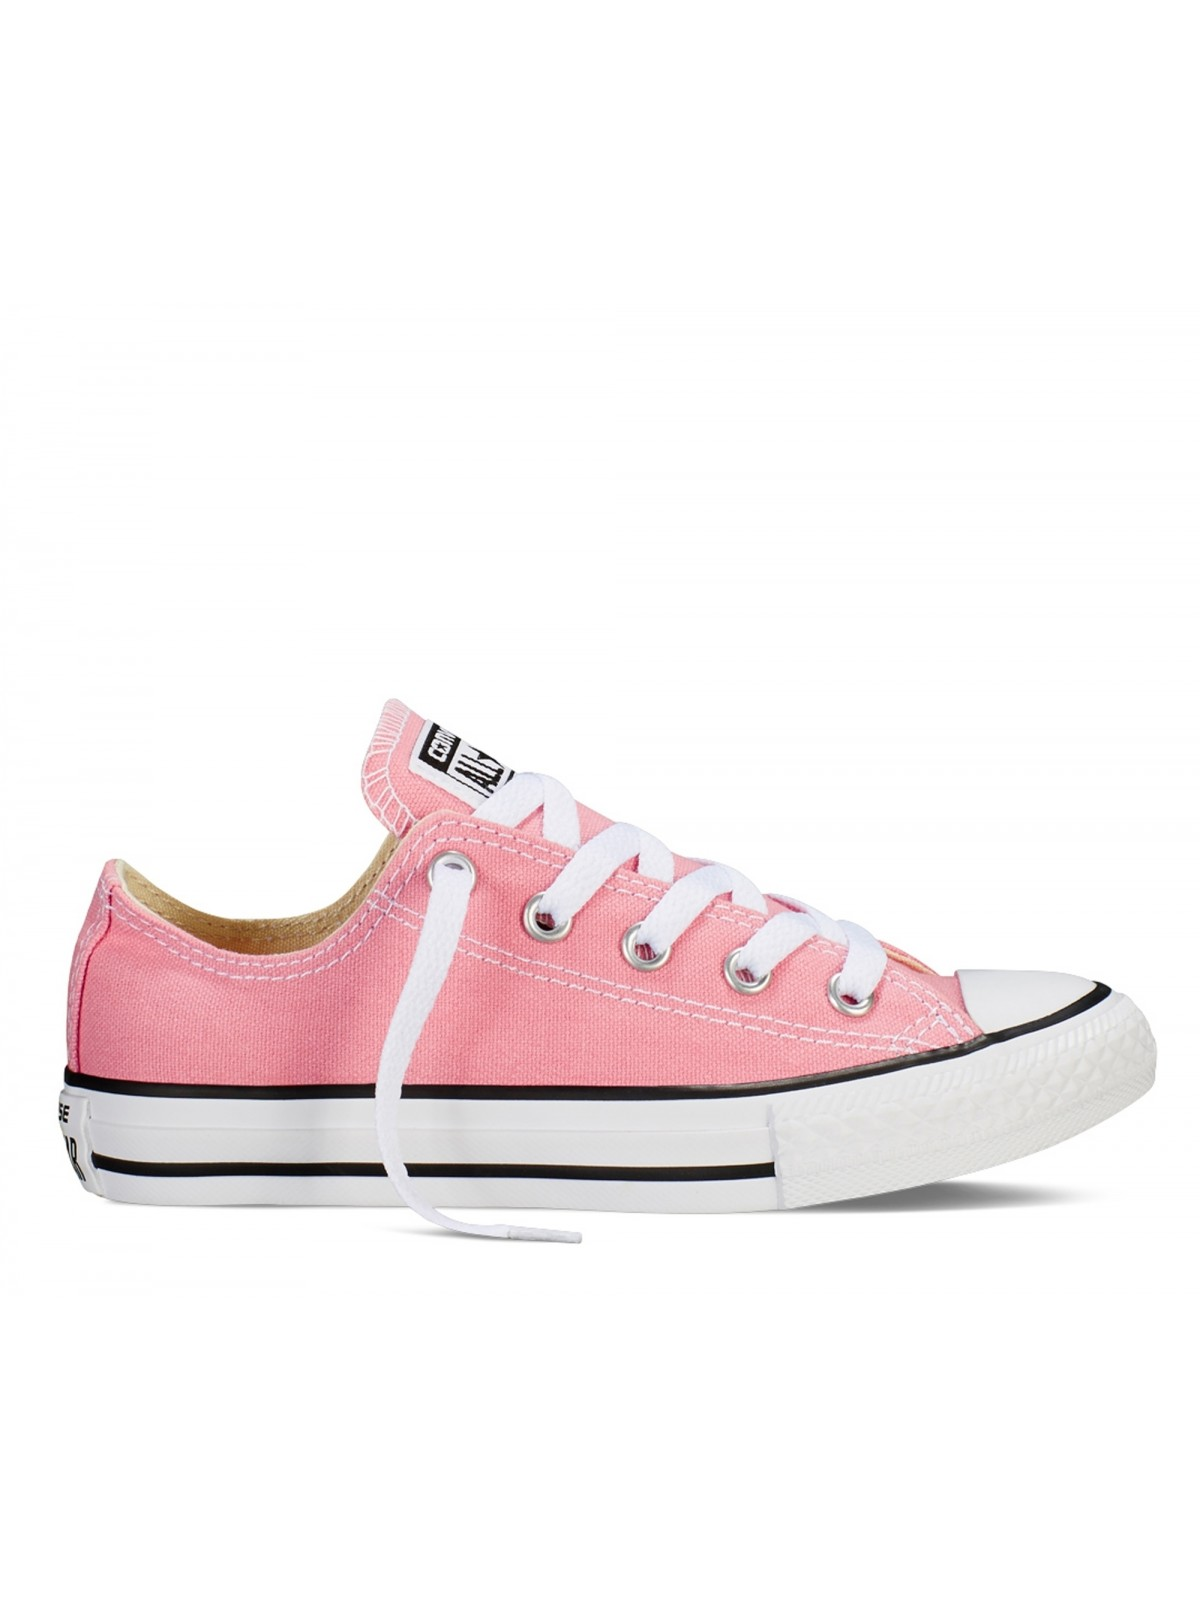 Converse Chuck Taylor all star junior toile basse break pink